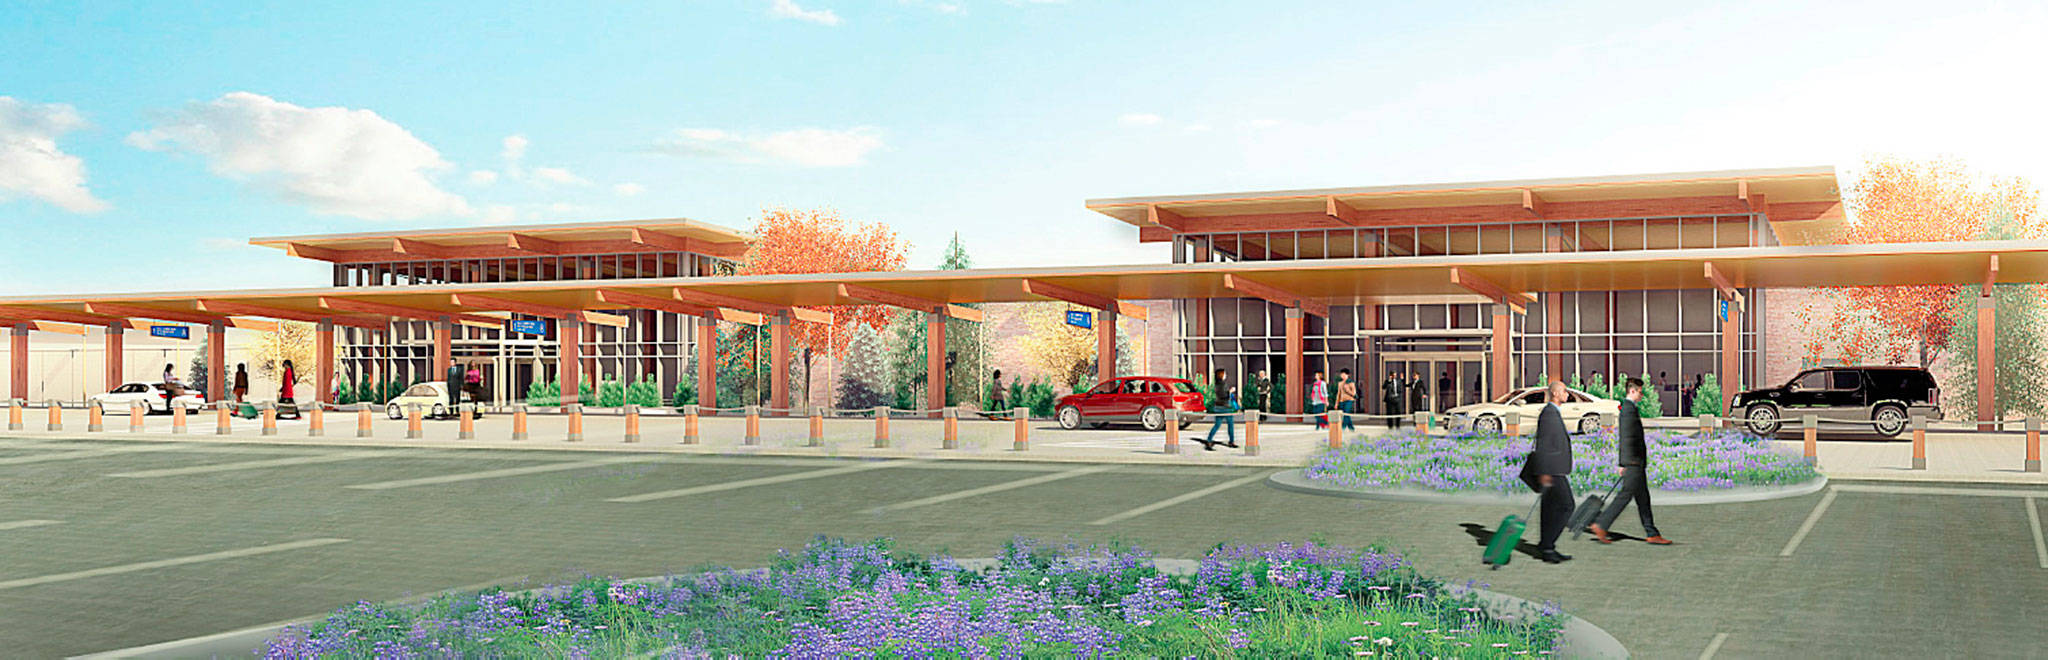 An artist's rendering shows the planned passenger terminal at Paine Field in Everett. (Propeller Airports)